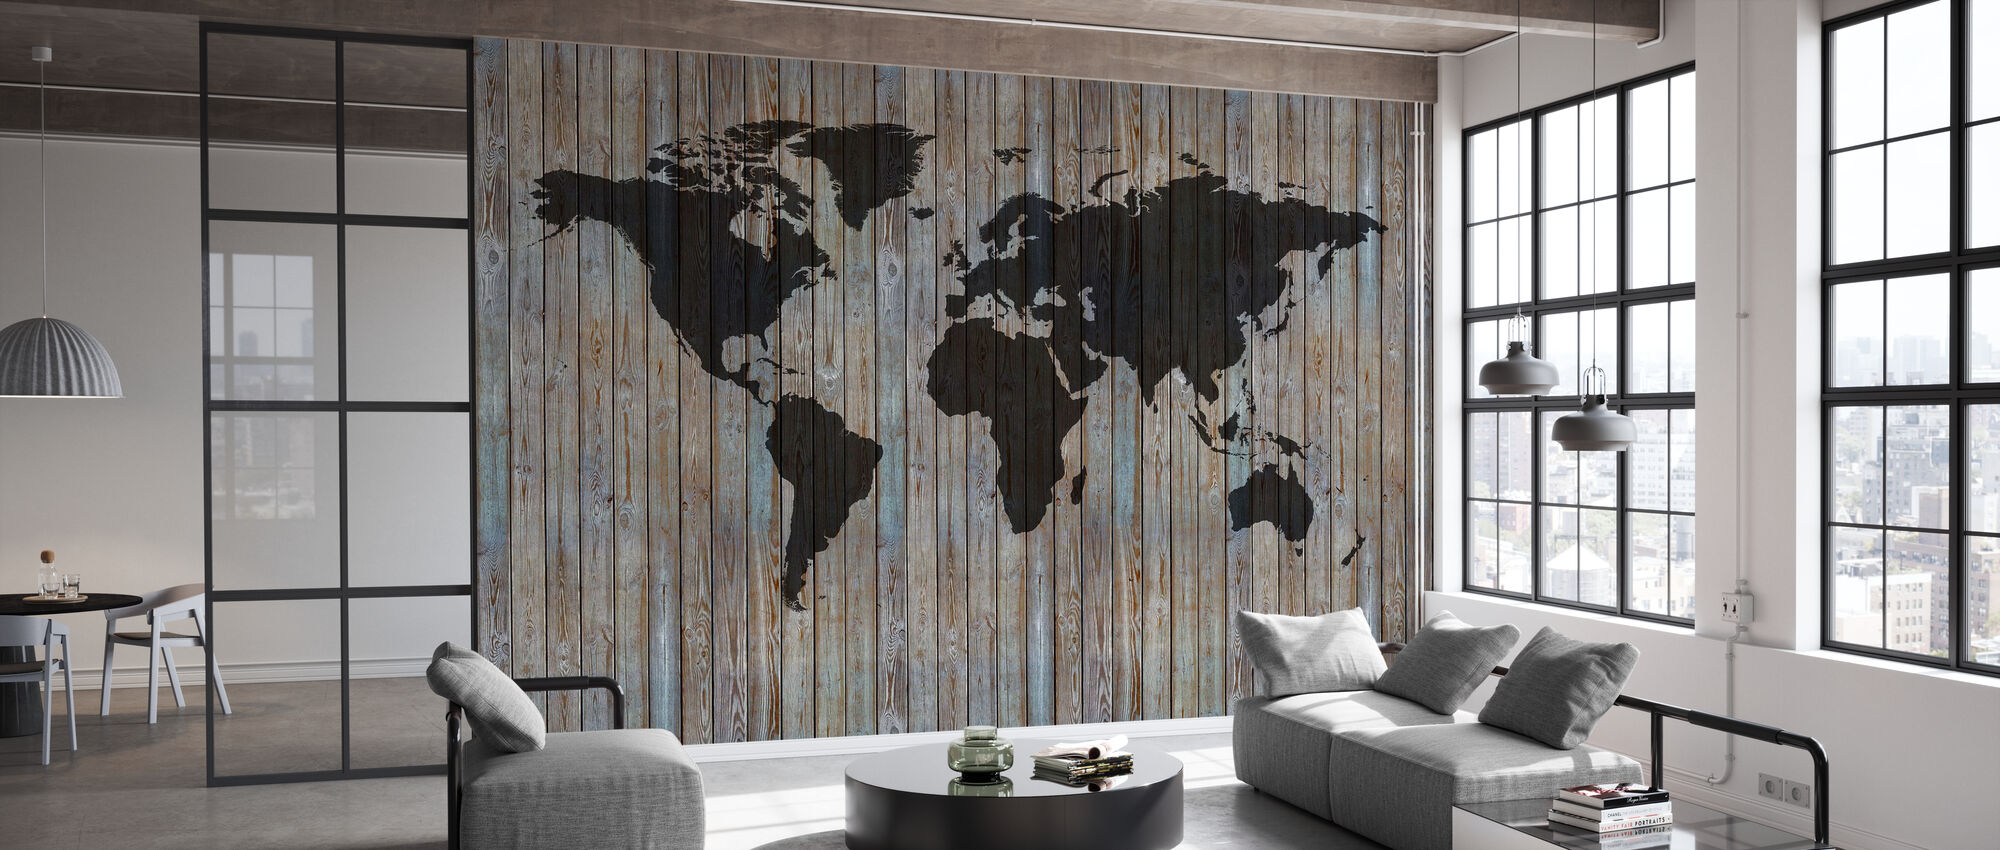 World Map Wooden Plank - Old Silver - Wallpaper - Office